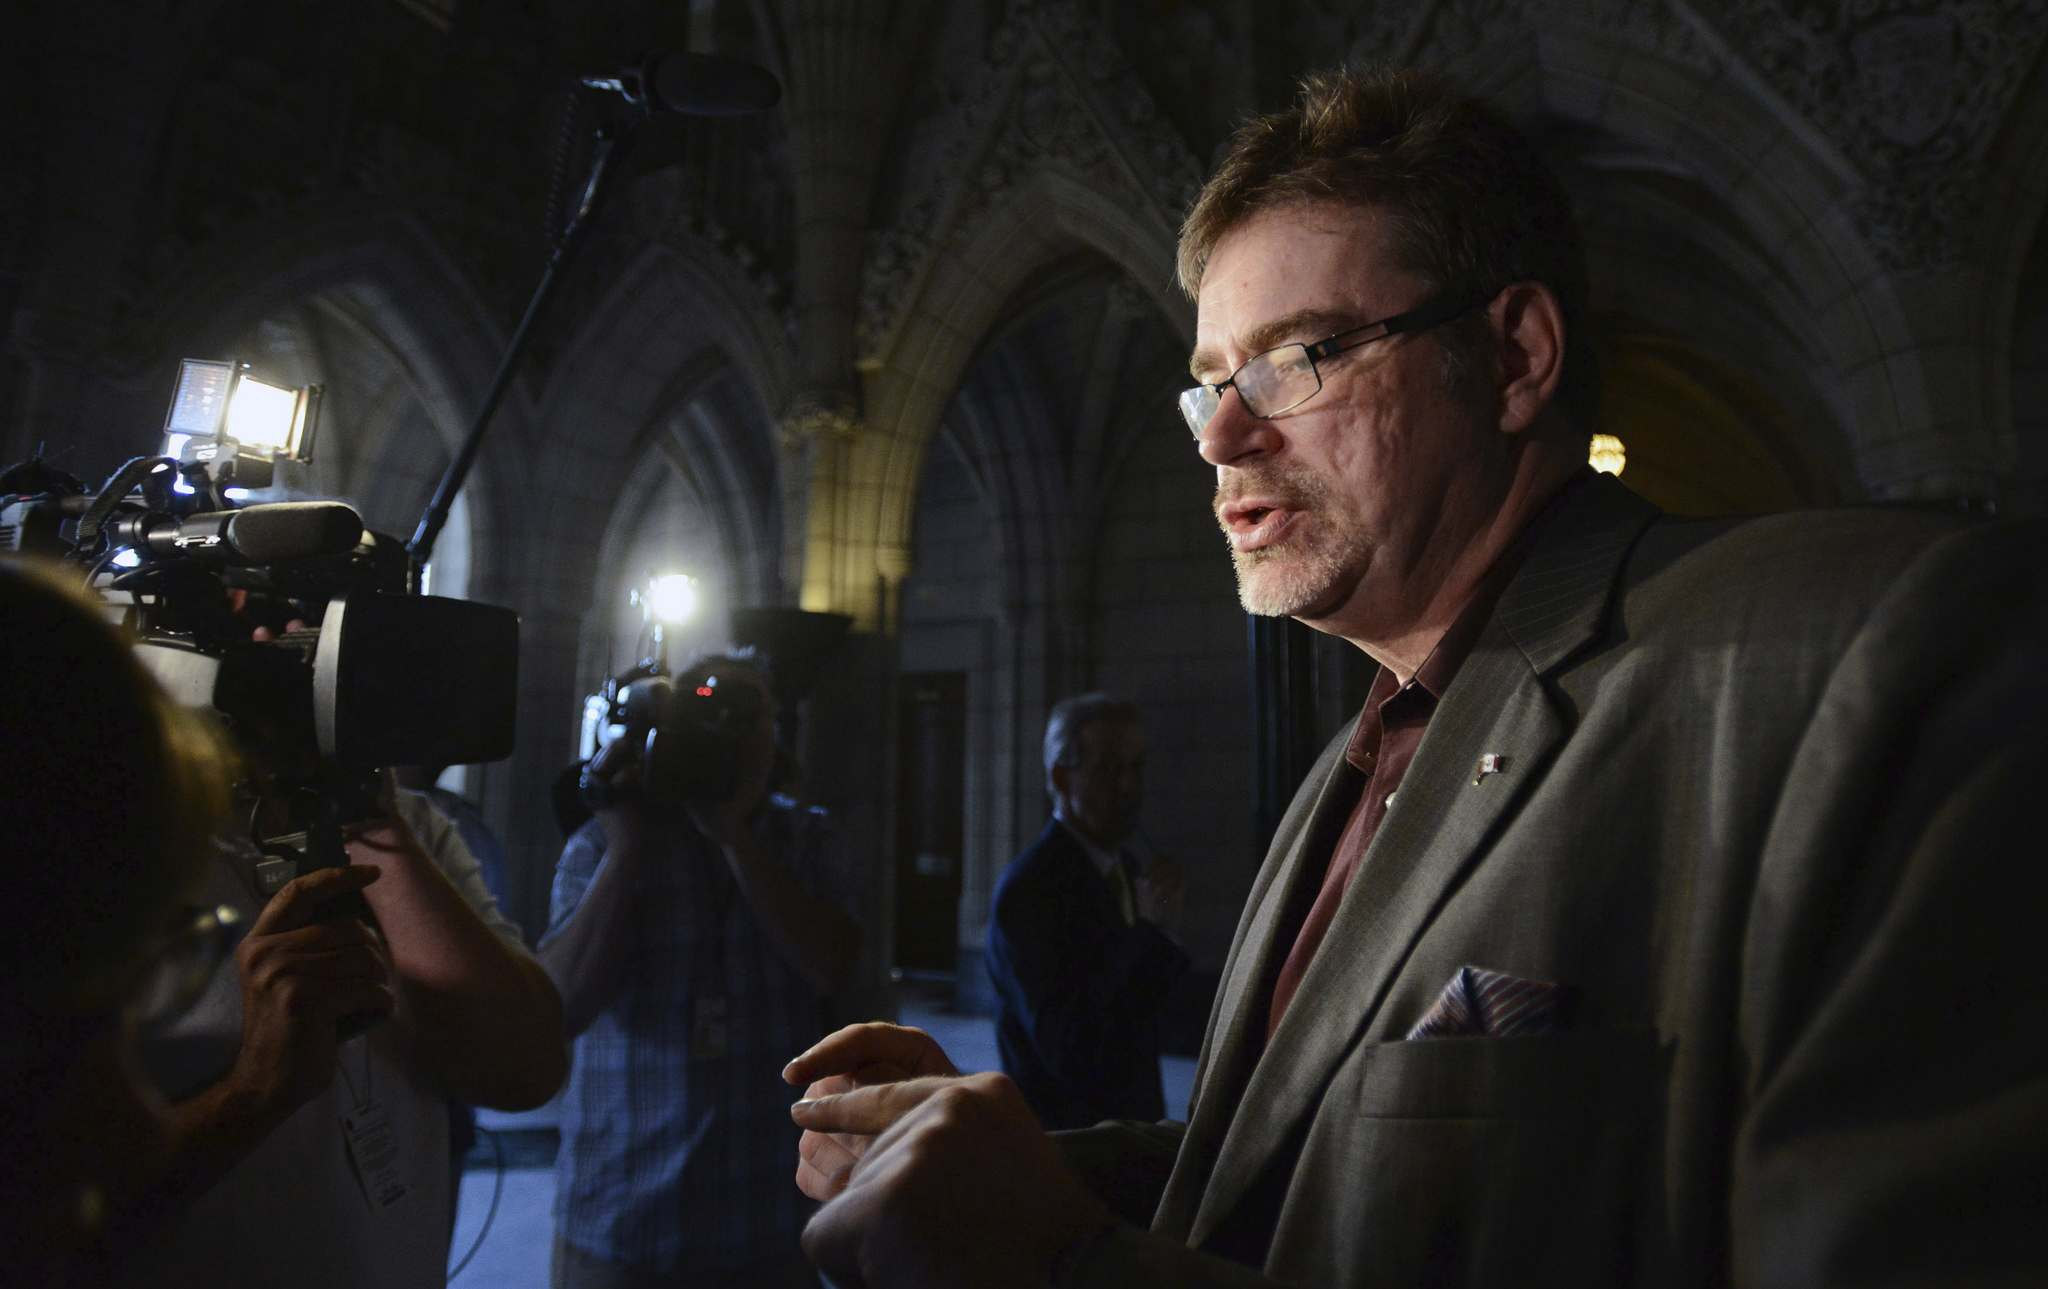 """""""If you stick to (your party's) script, you're going to have a very happy but unremarkable career in politics,"""" former Edmonton MP Brent Rathgeber said. (Sean Kilpatrick / Canadian Press files)"""